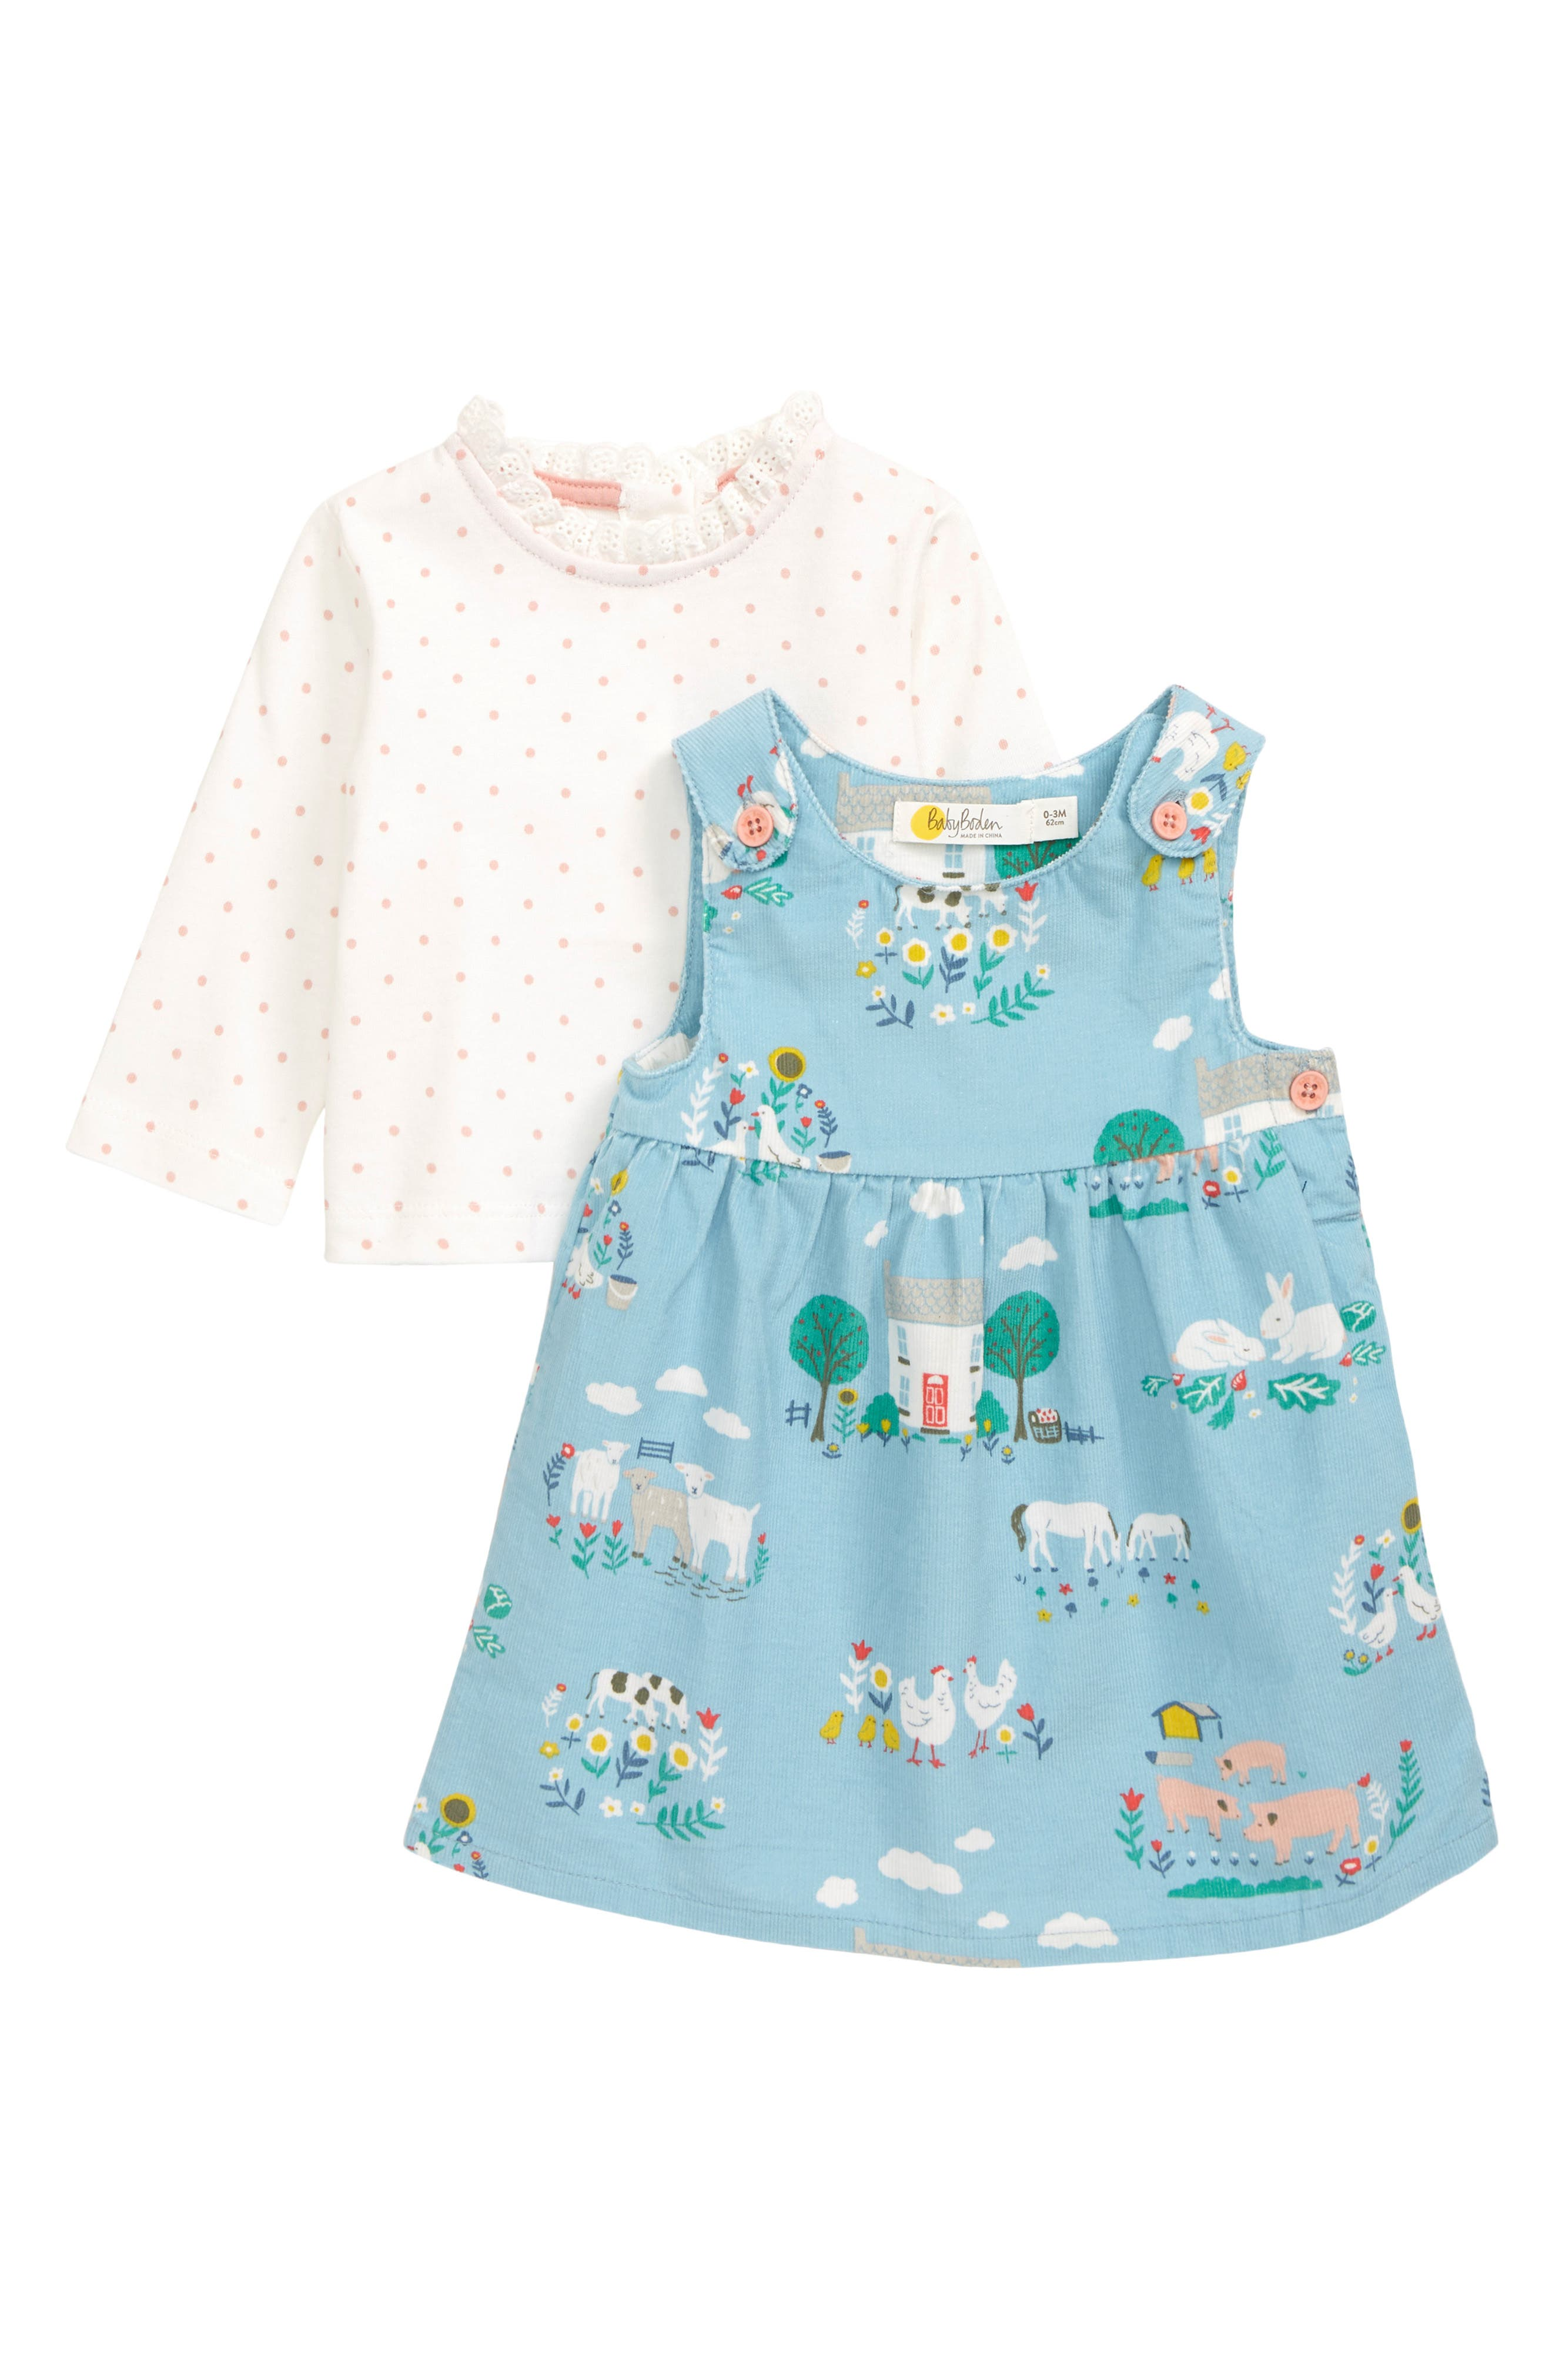 Sweet and charming (just like your little one), this barn-themed set features a dotted, lace-trimmed top and a cute corduroy pinafore dress. Style Name: Mini Boden Pinnie Shirt & Dress Set (Baby). Style Number: 6096412. Available in stores.